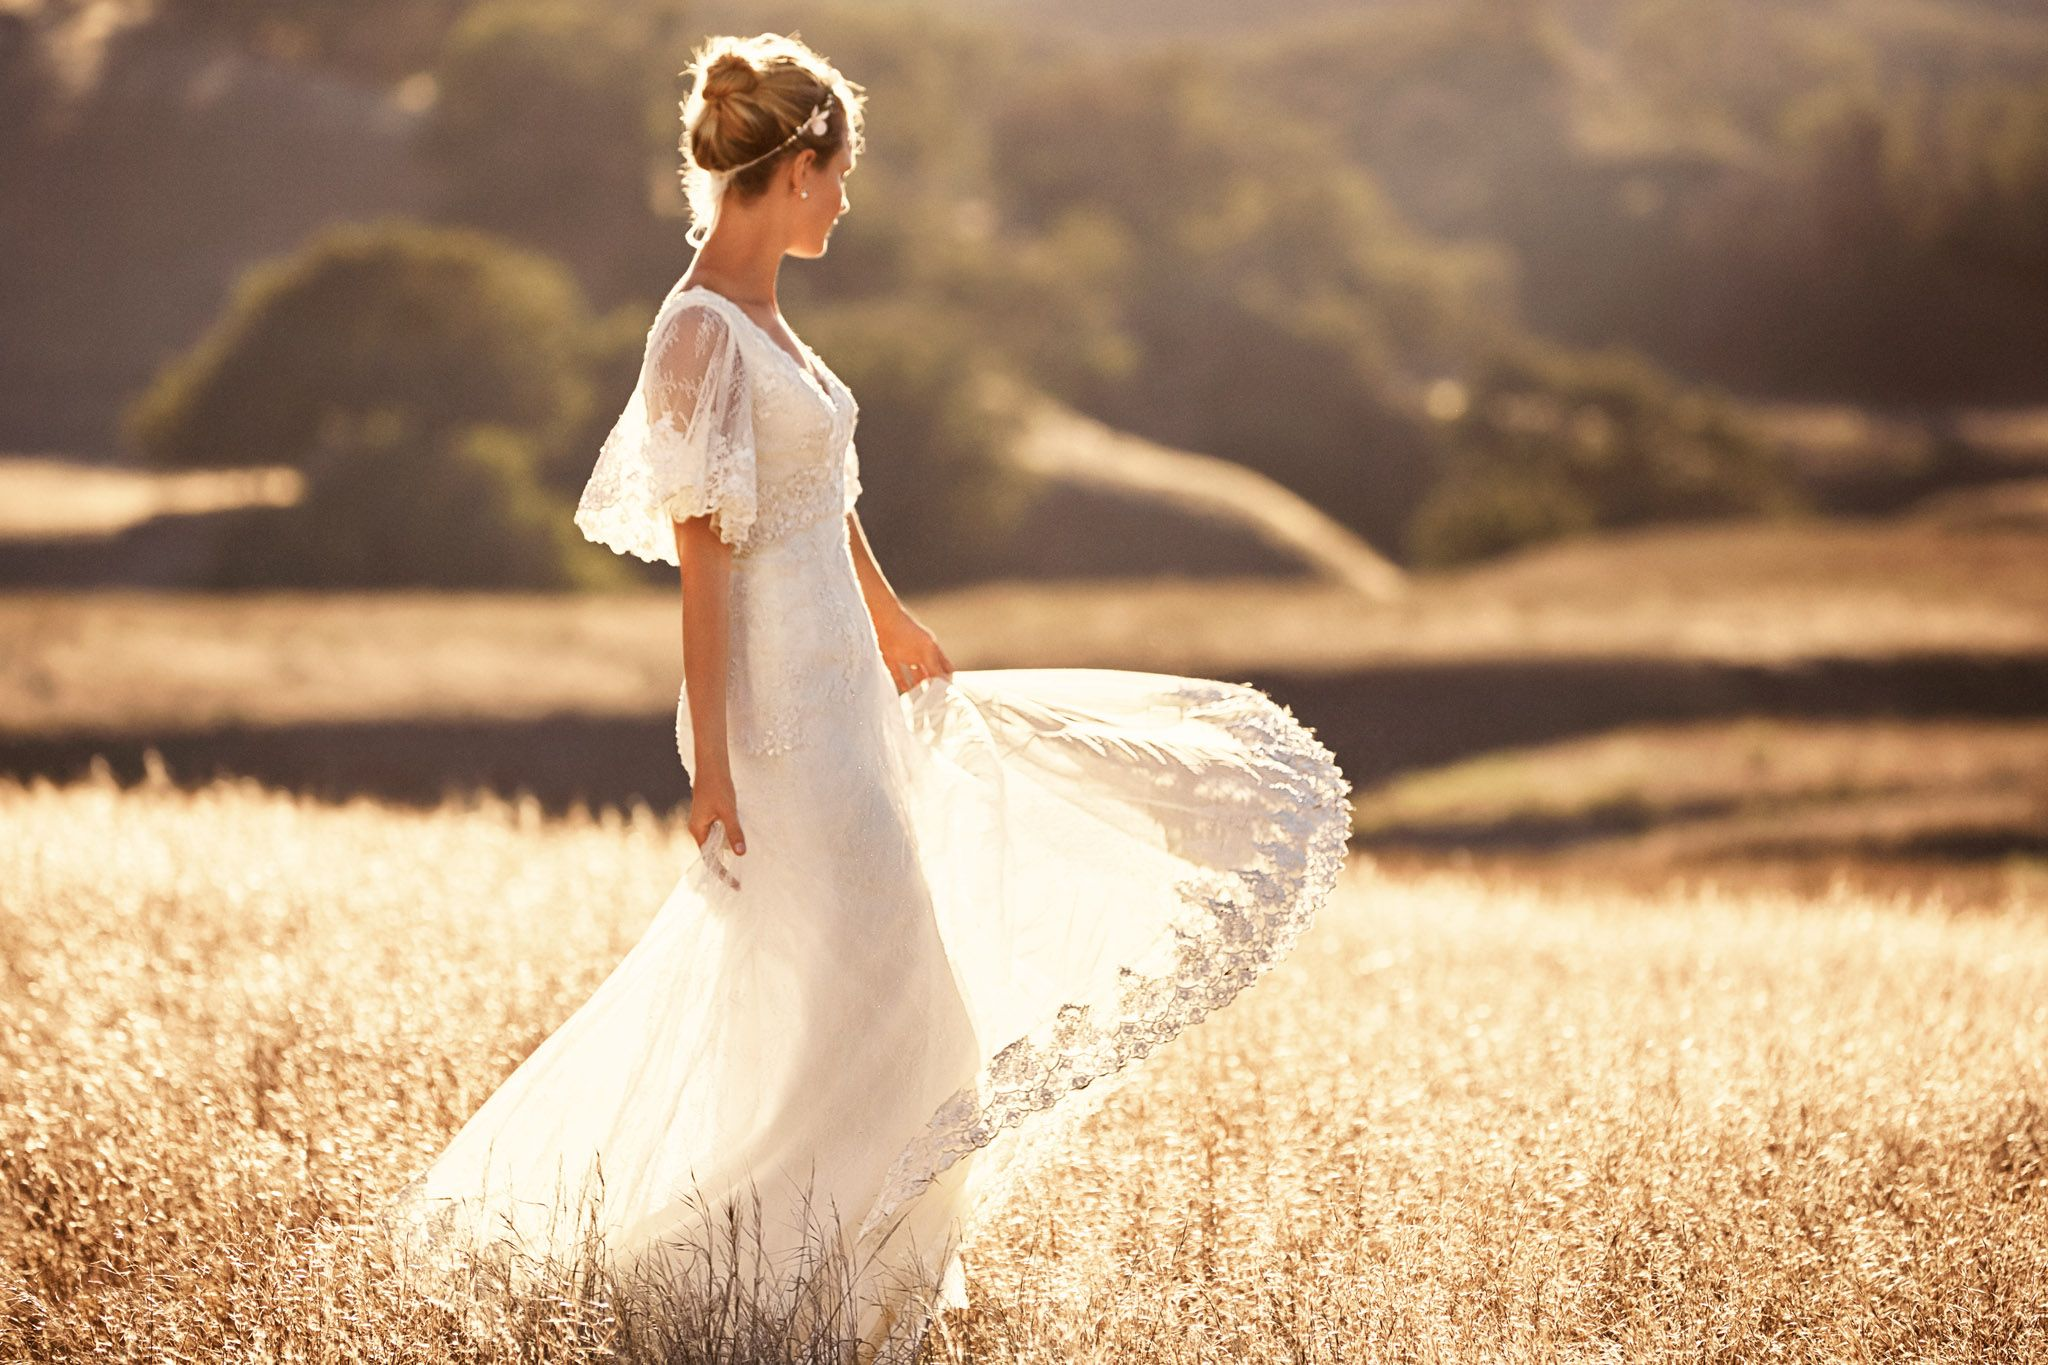 Sale > melissa sweet wedding dress with flutter sleeves > is stock